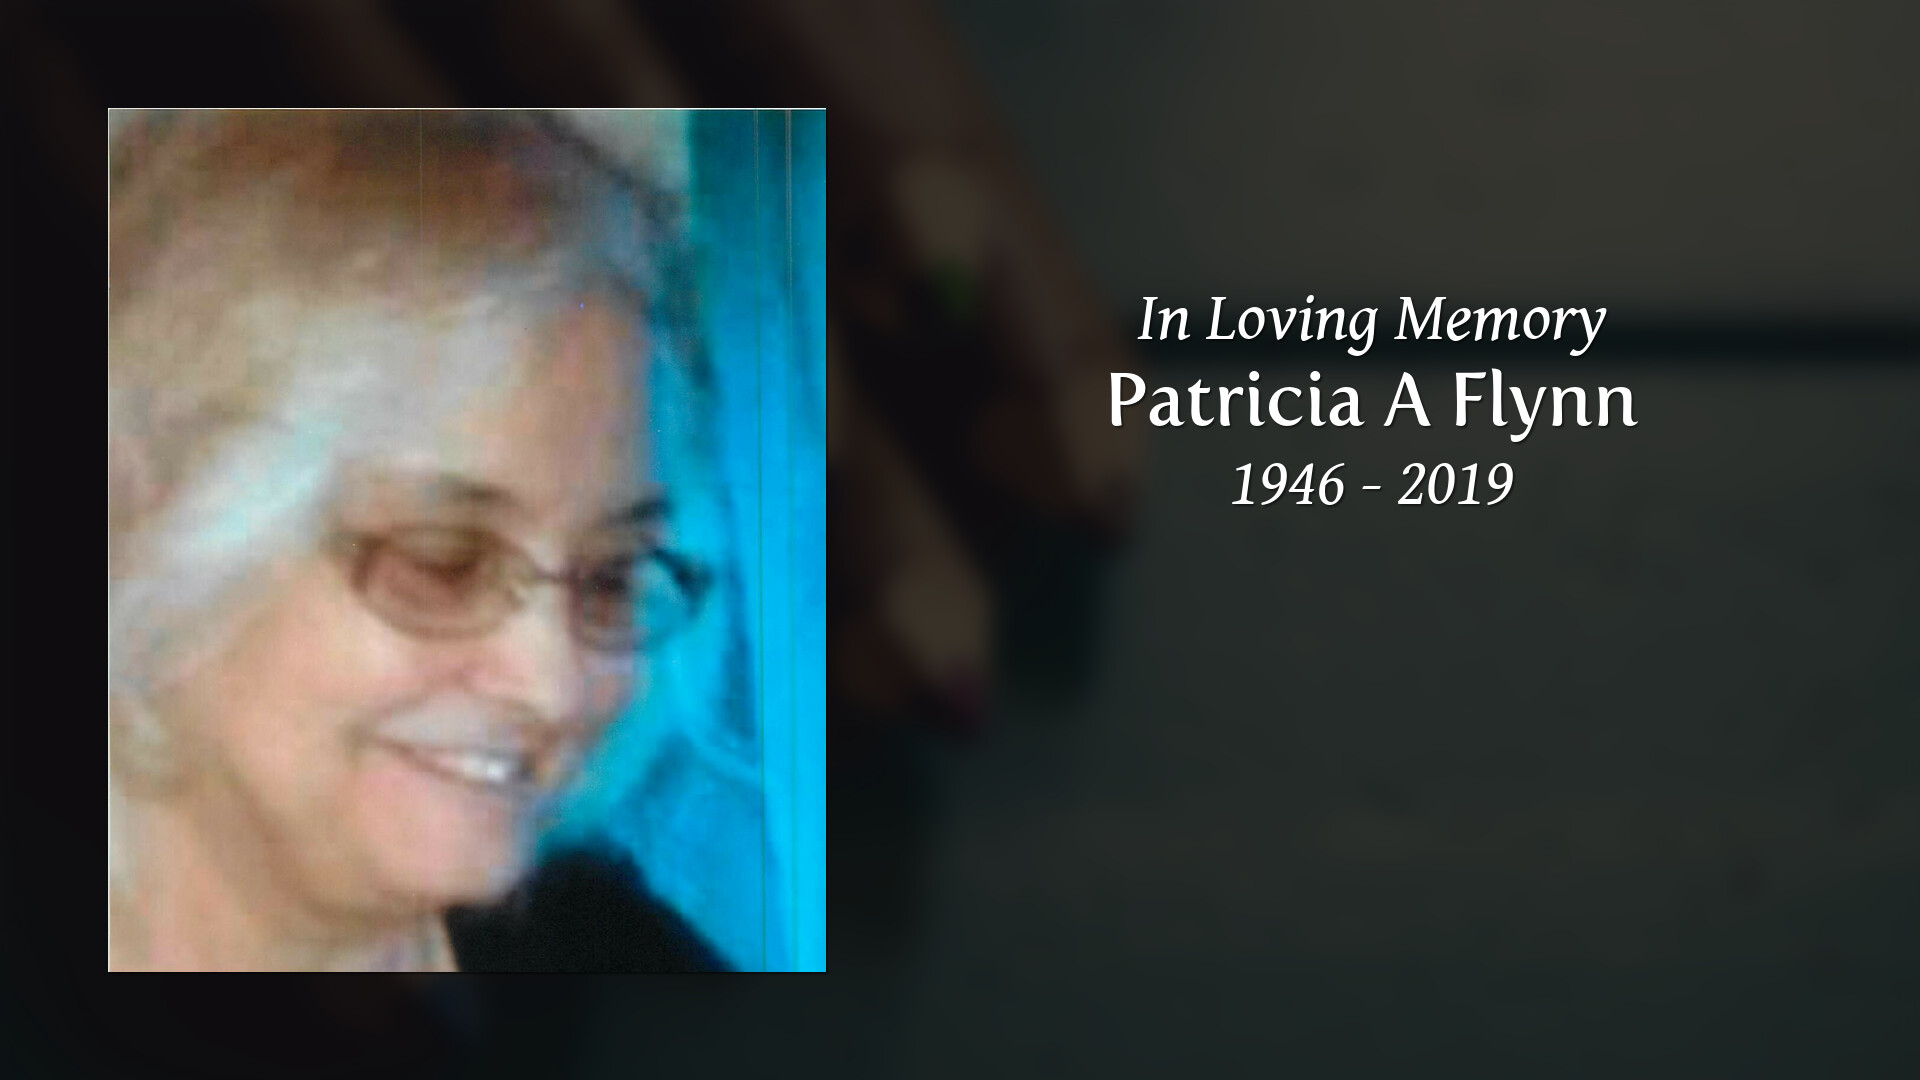 Newcomer Family Obituaries - Patricia A Flynn 1946 - 2019 - Newcomer